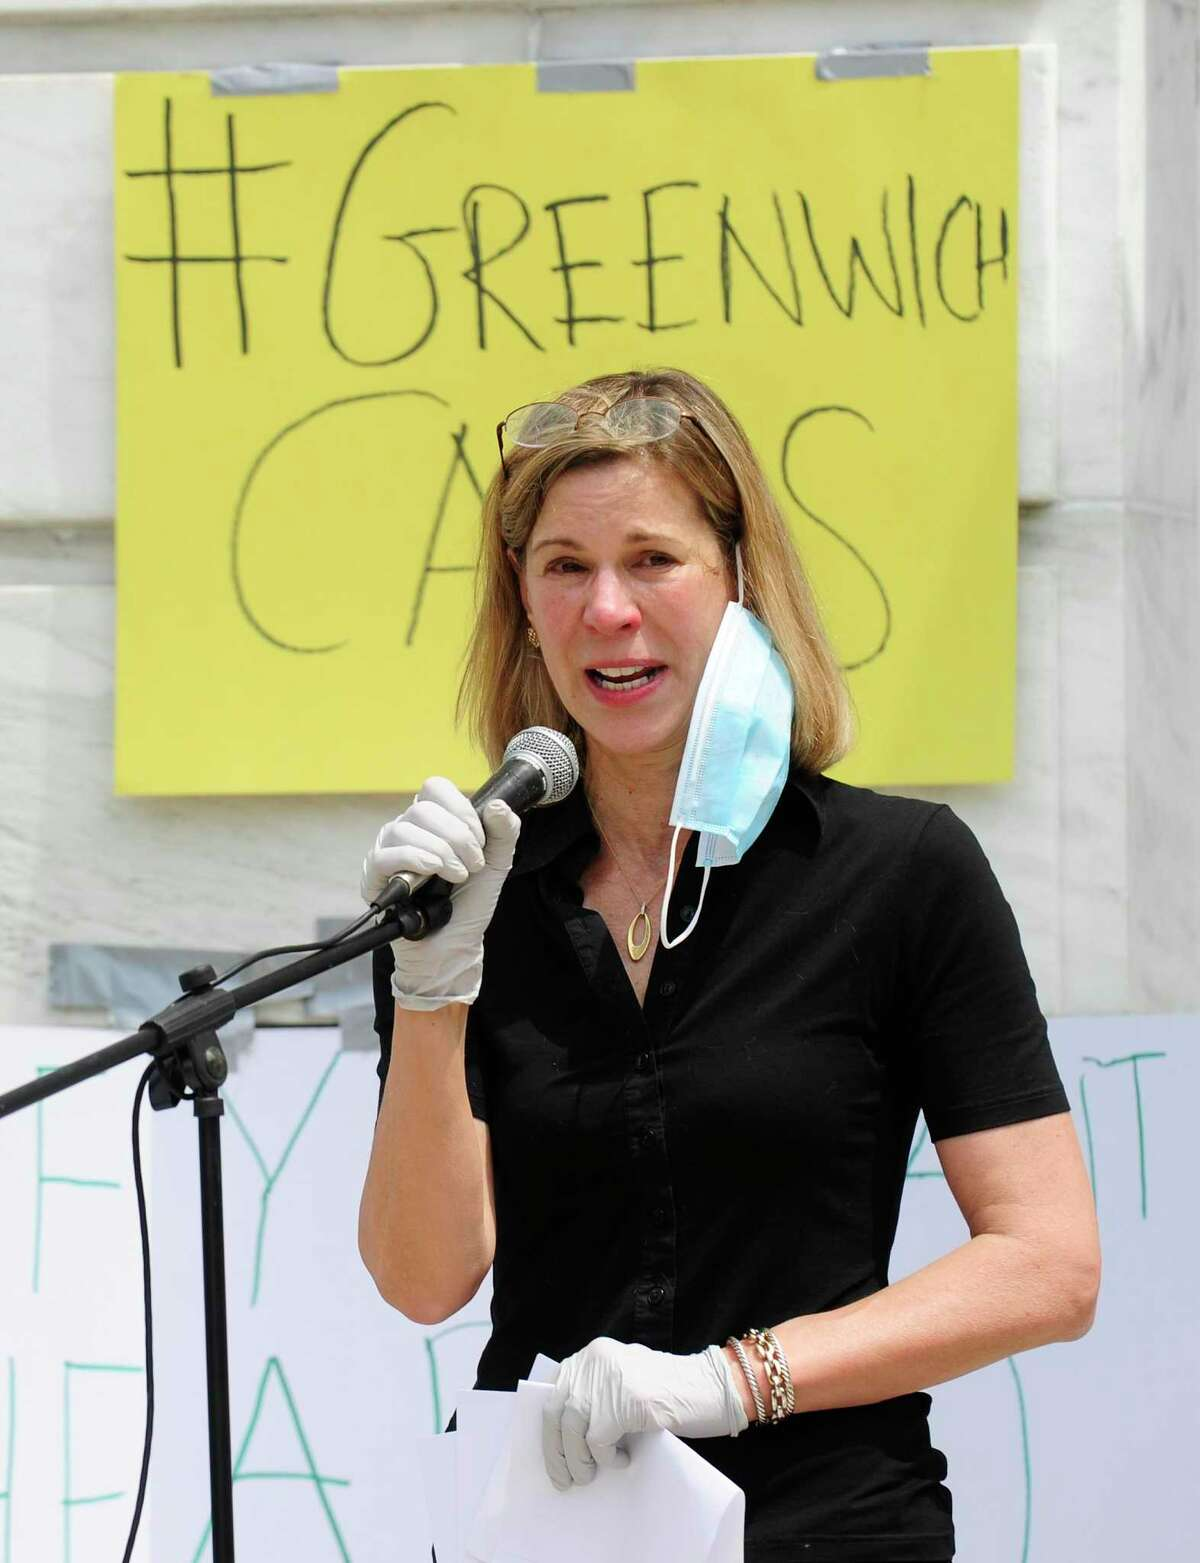 Joanna Swomley addresses more than 600 protesters who gathered in front of Greenwich Town Hail on June 6, 2020 to rally and call for police reform in the wake of the death of George Floyd.